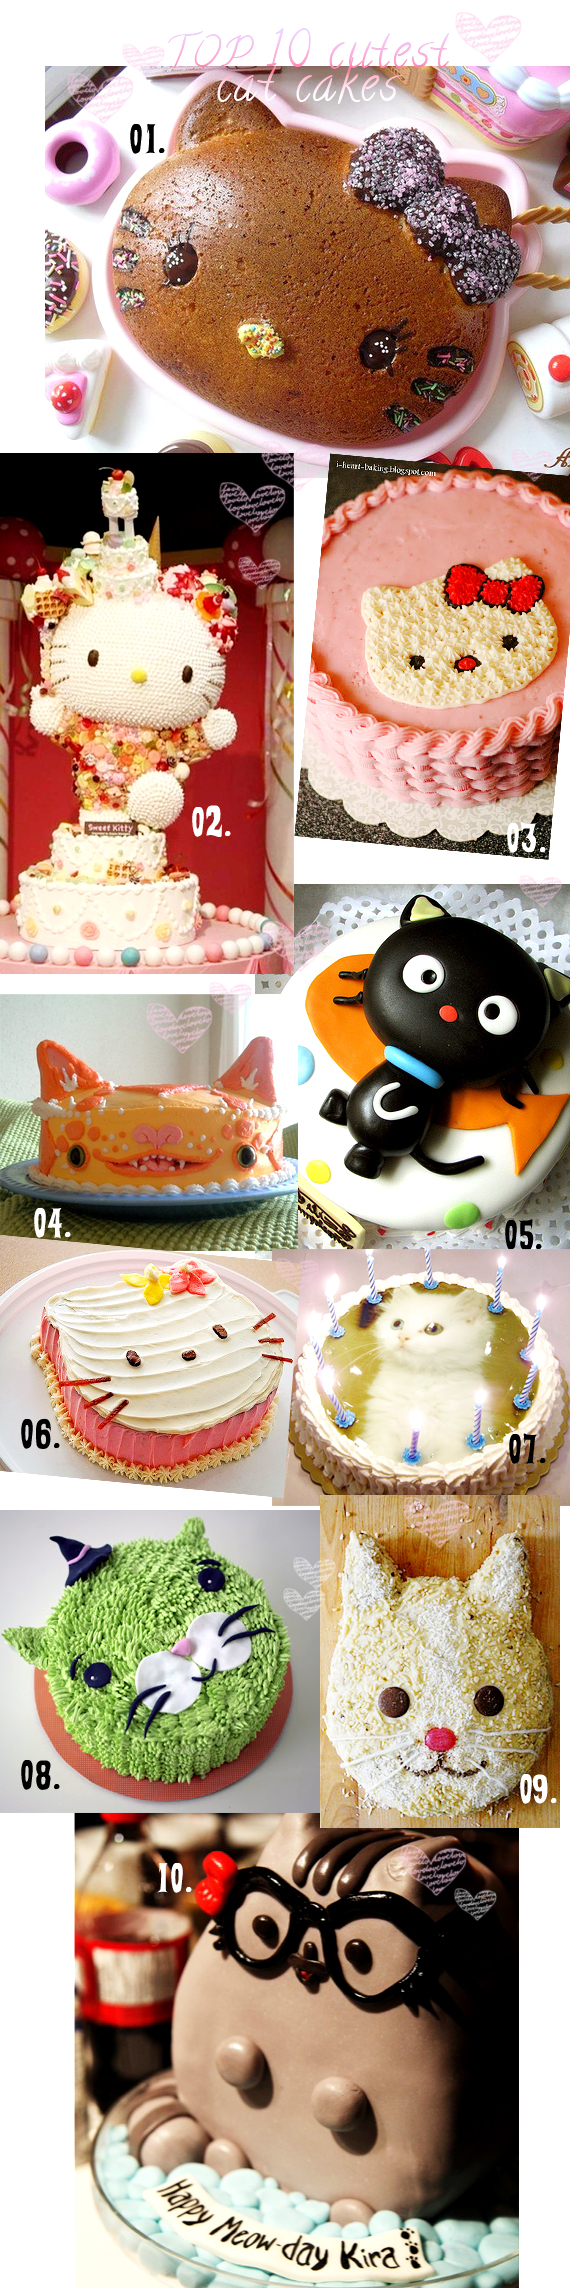 top 10 cutest cat cakes